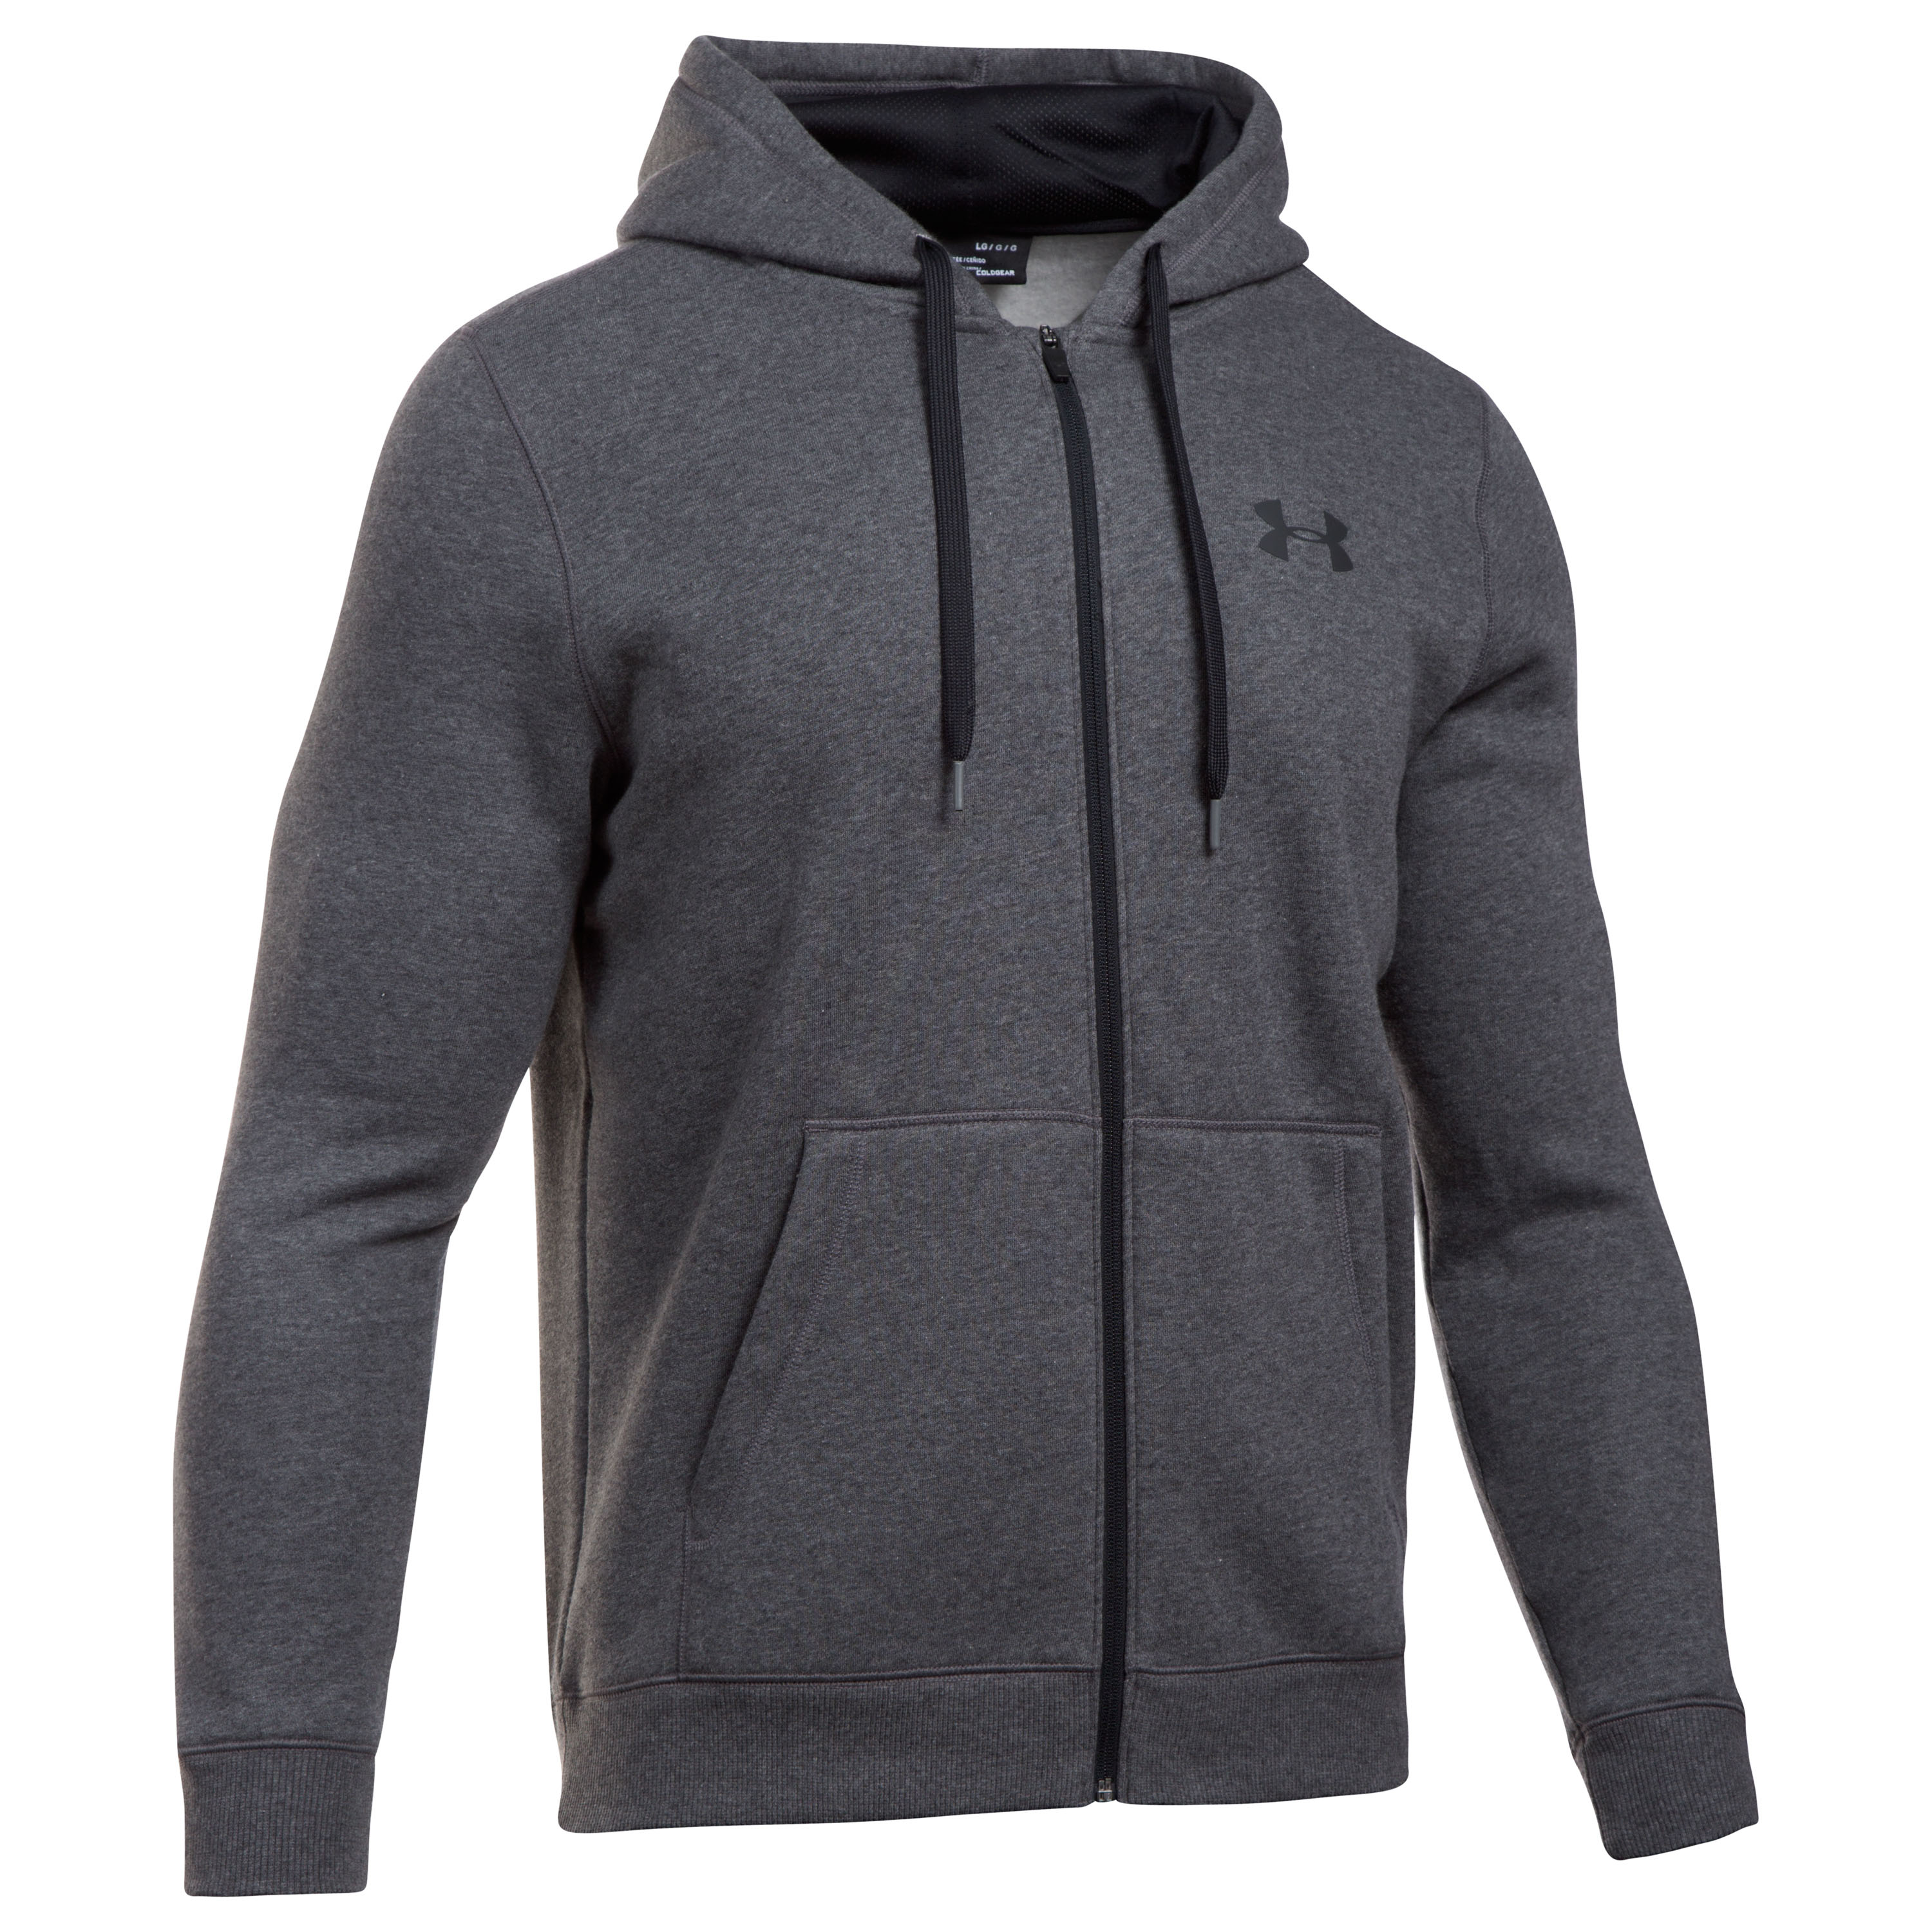 Under Armour Zip Hoodie Rival Fitted gray mottled